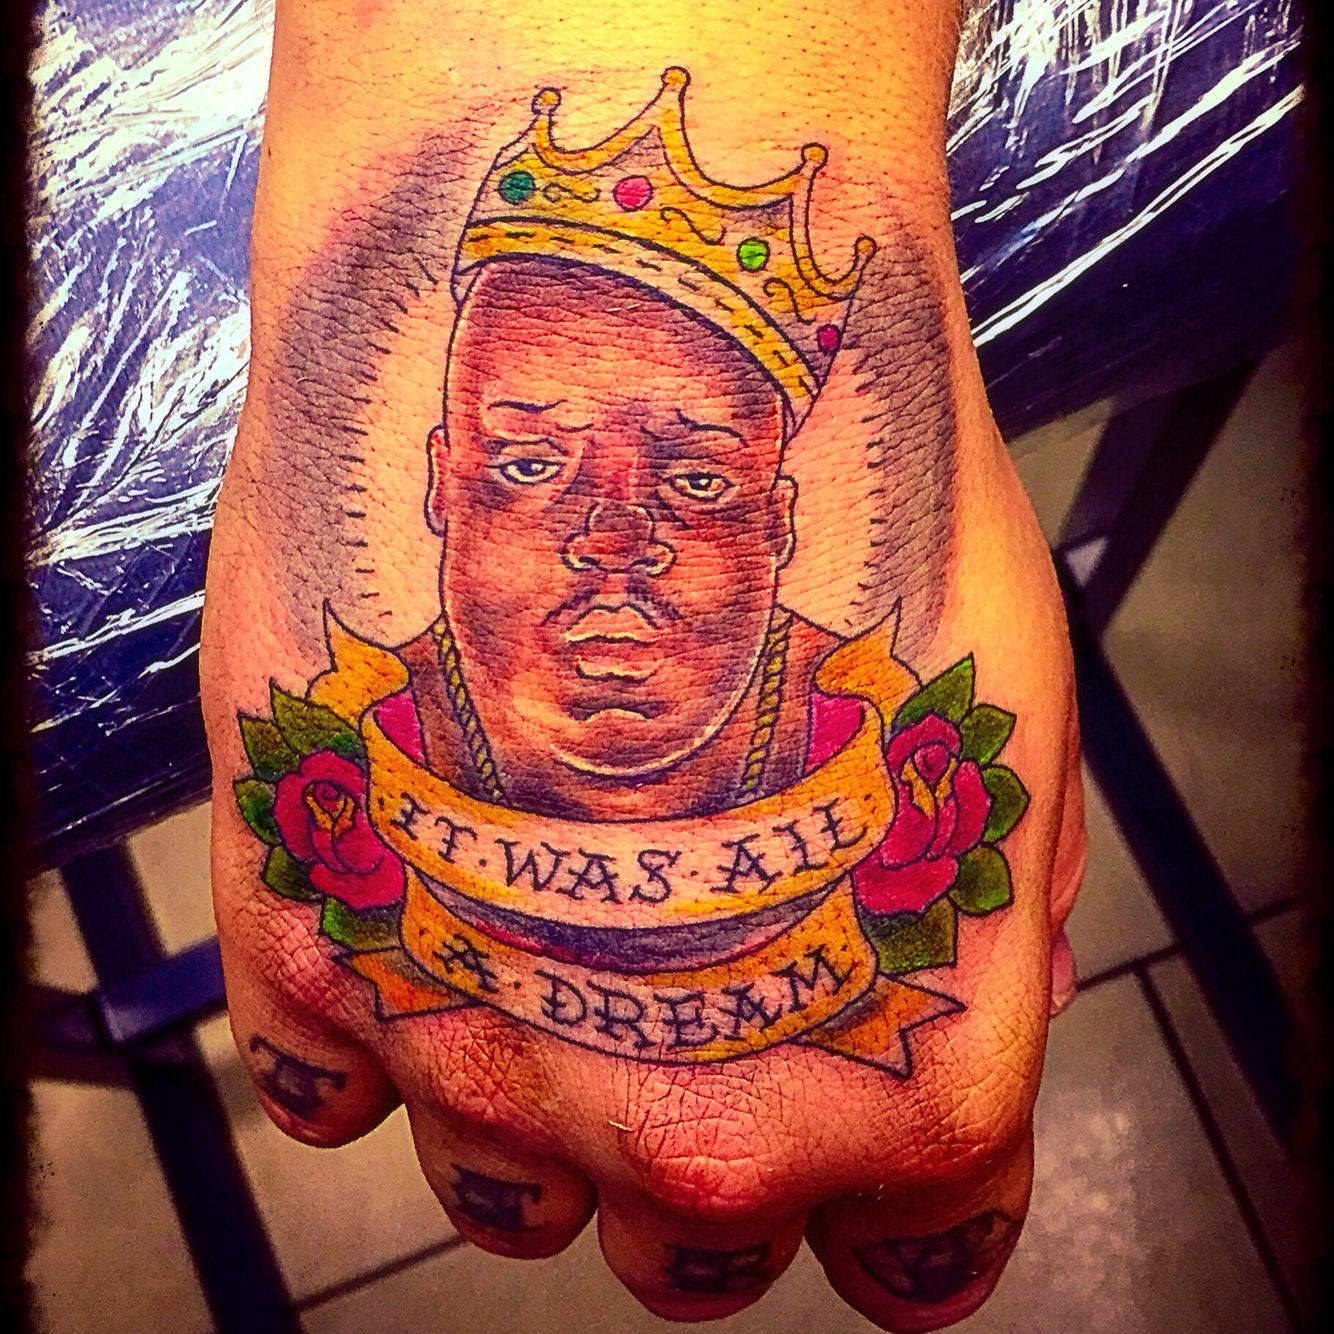 My Notorious Big Biggie Smalls Christopher Wallace Tattoo Ideas And Designs